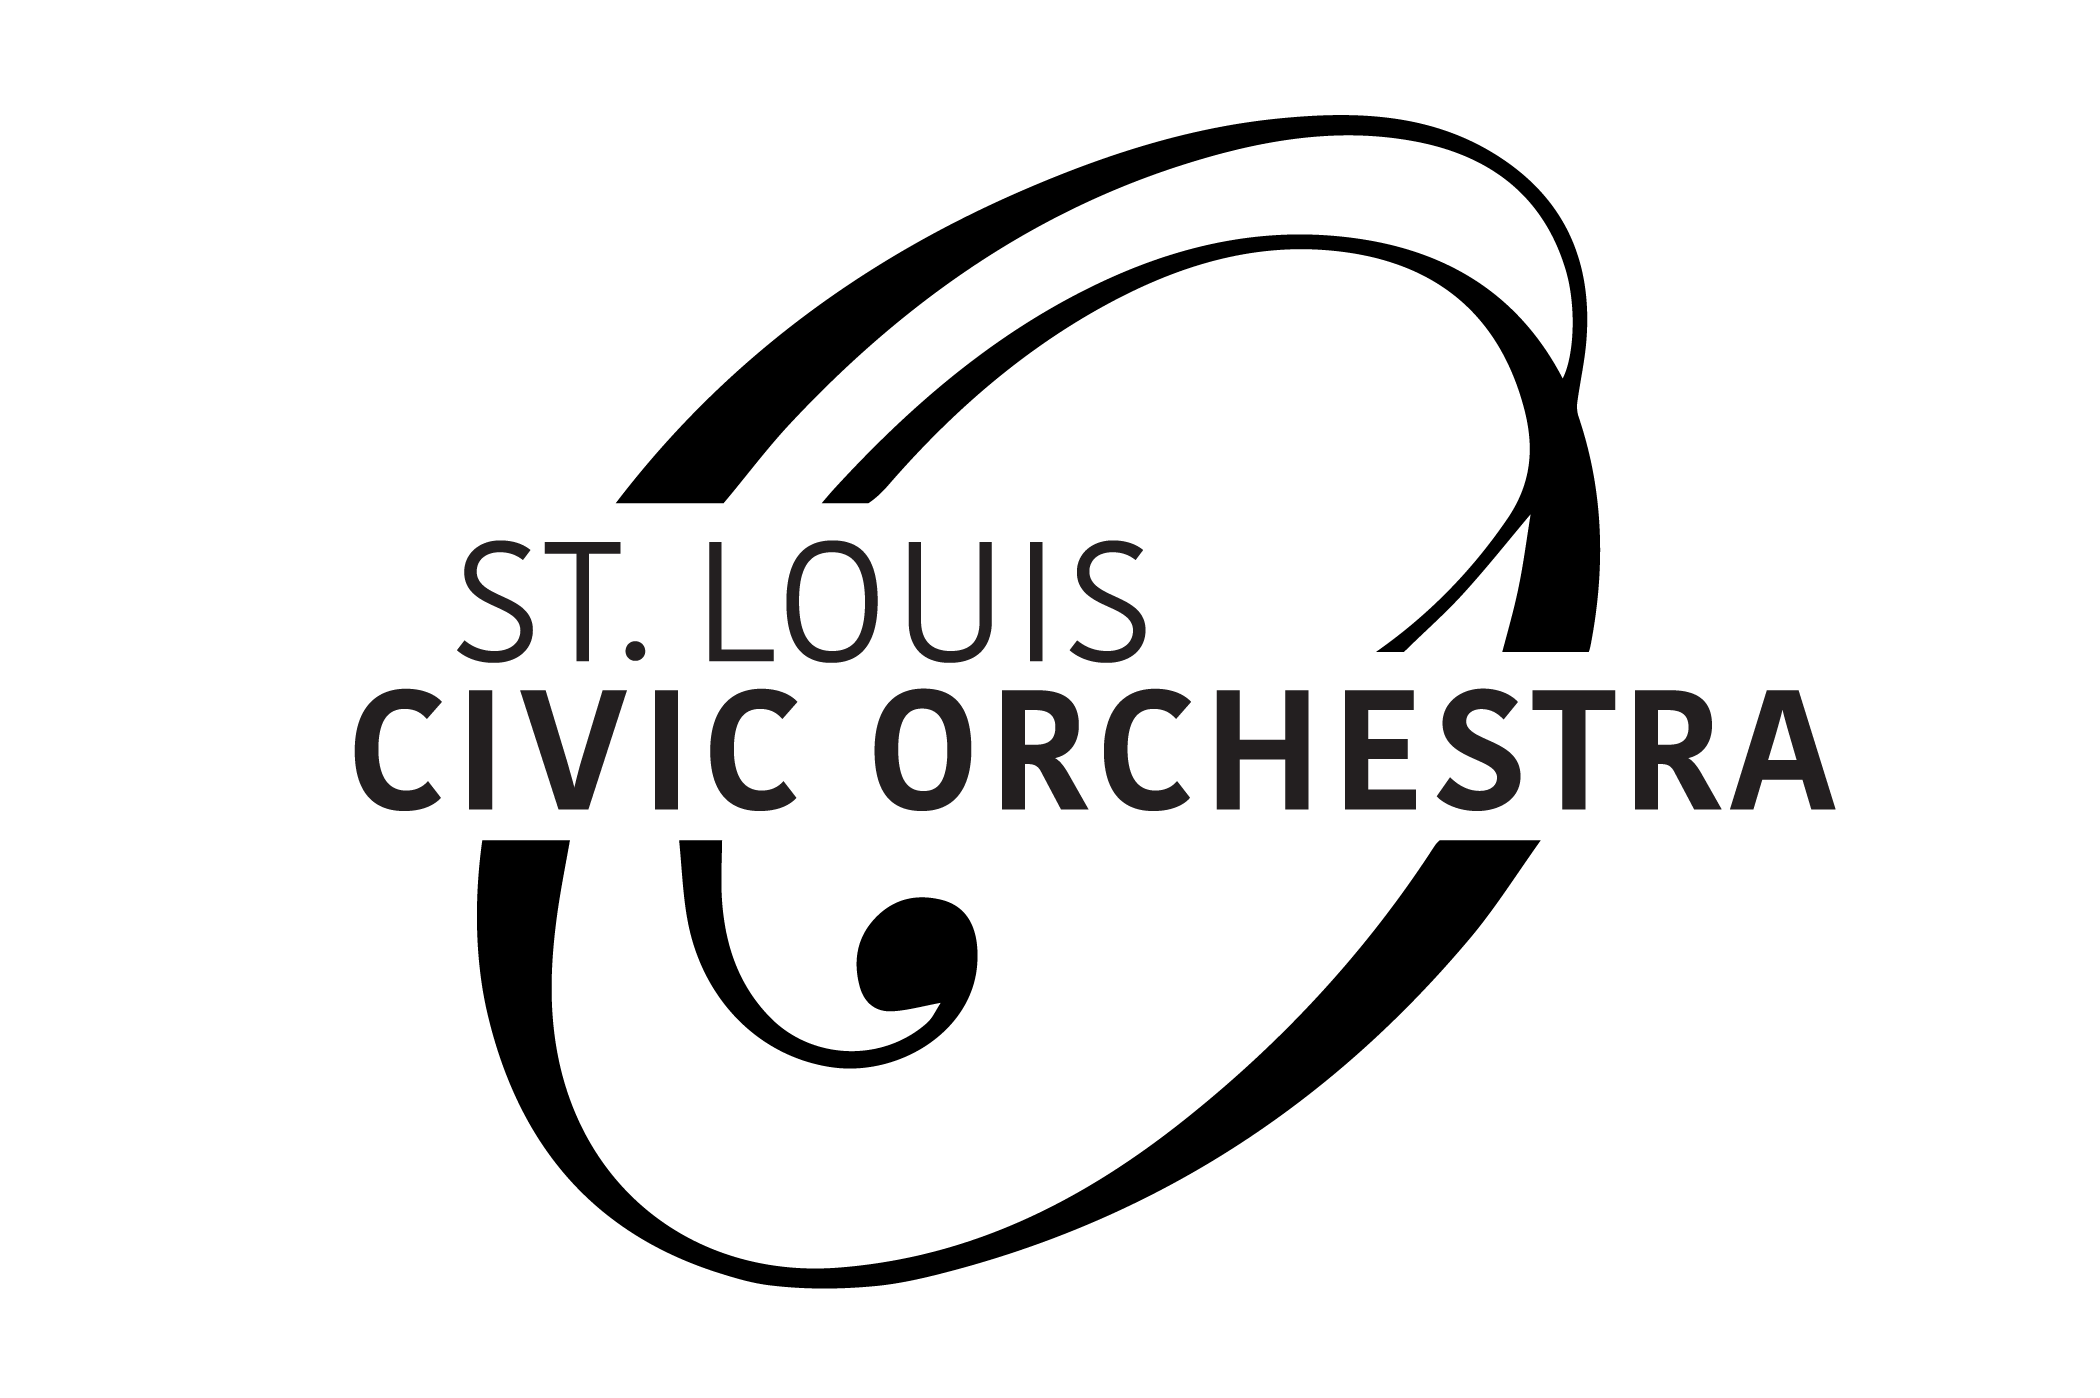 St. Louis Civic Orchestra